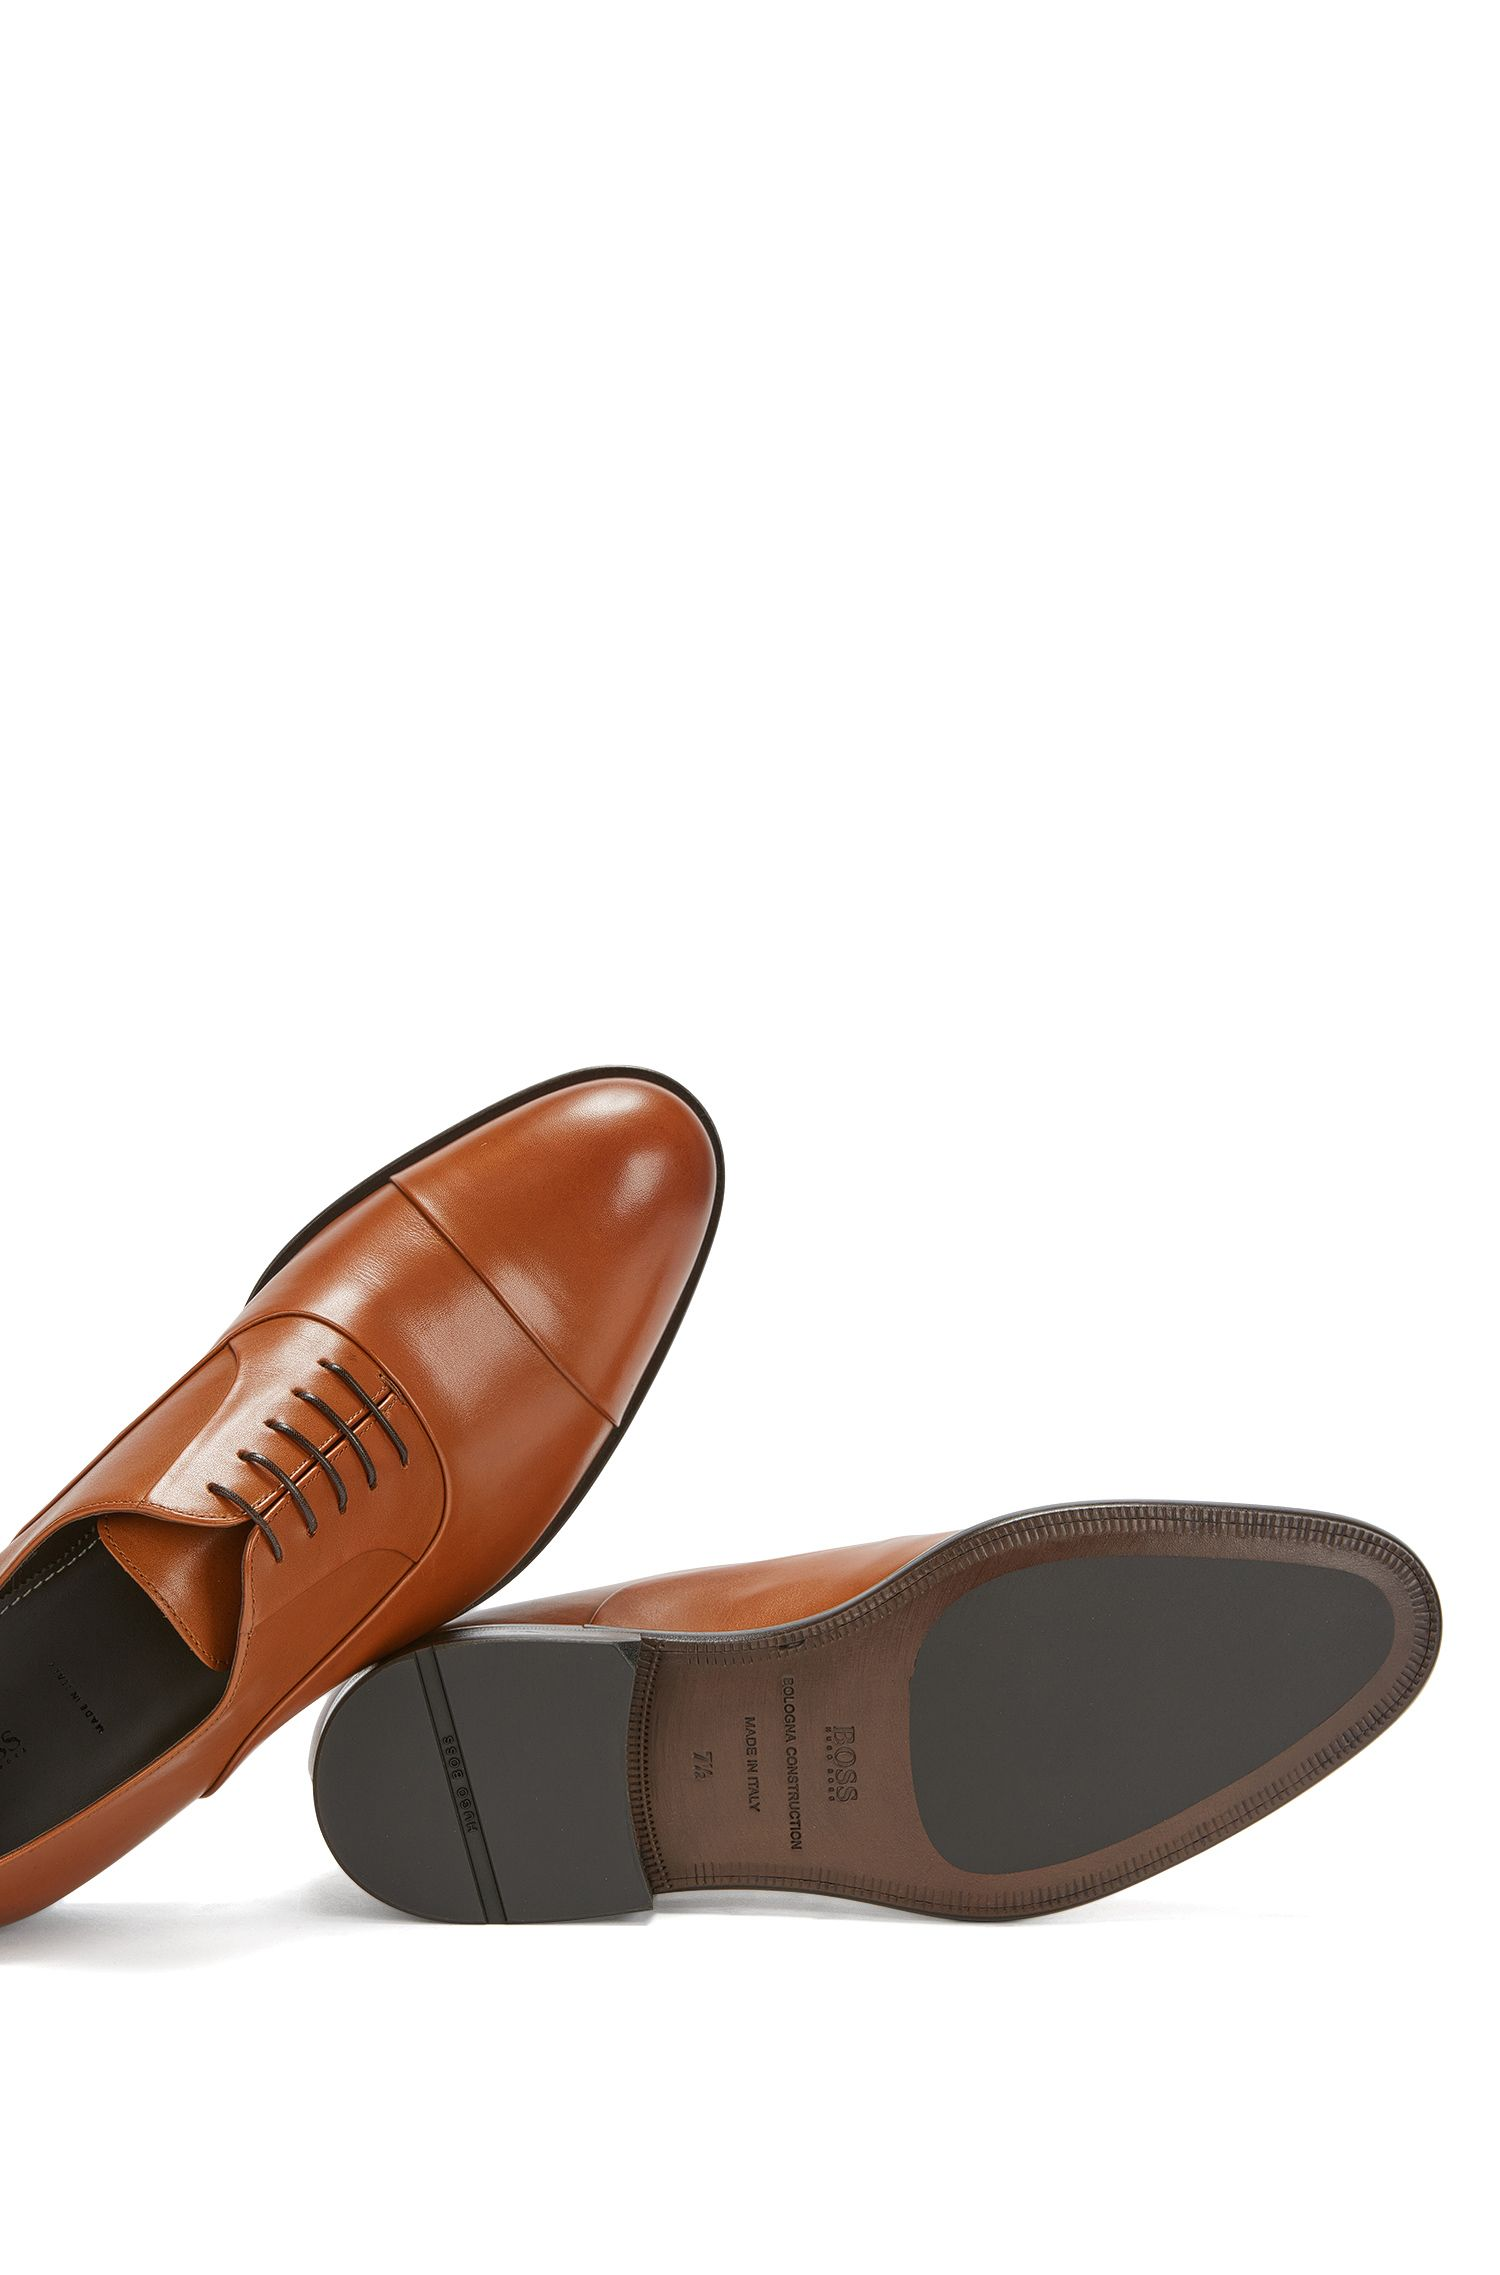 Oxford Dress Shoe | Bristol Oxfr Ctst, Brown